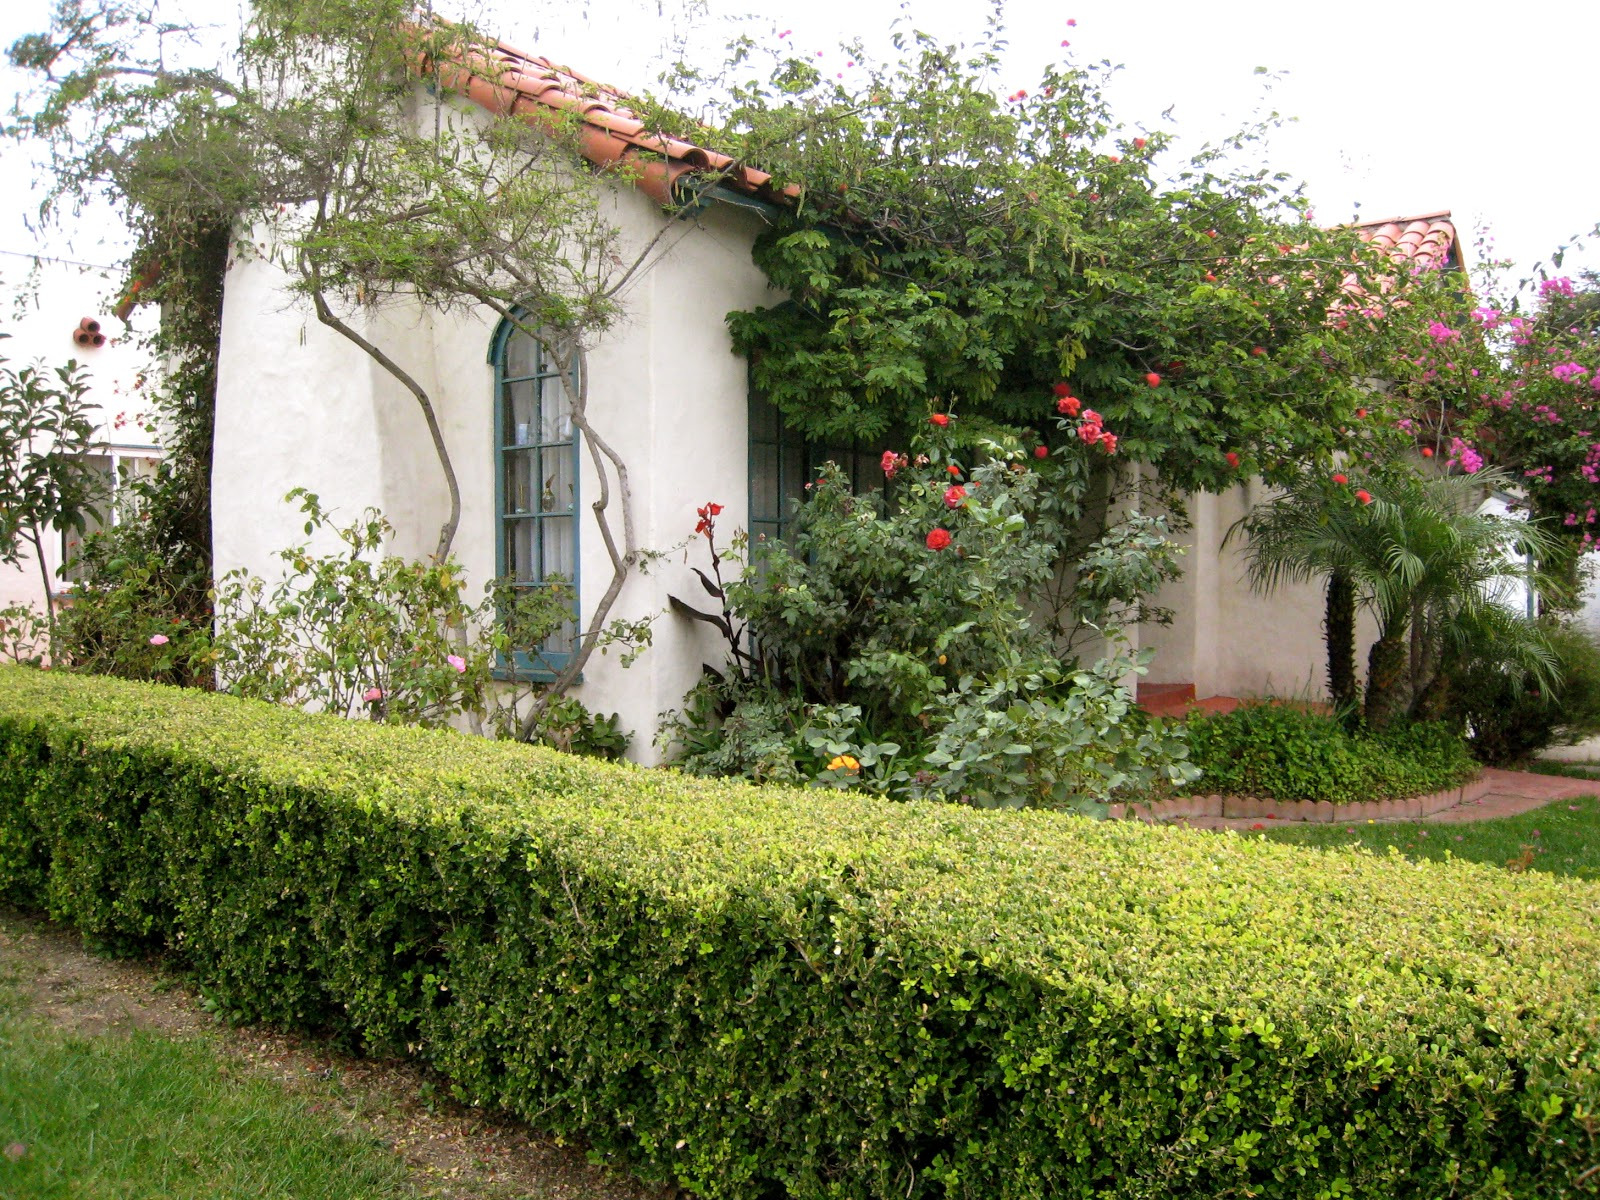 spanish style homes with garden Thrifty Nifty Things: Spanish Style Homes